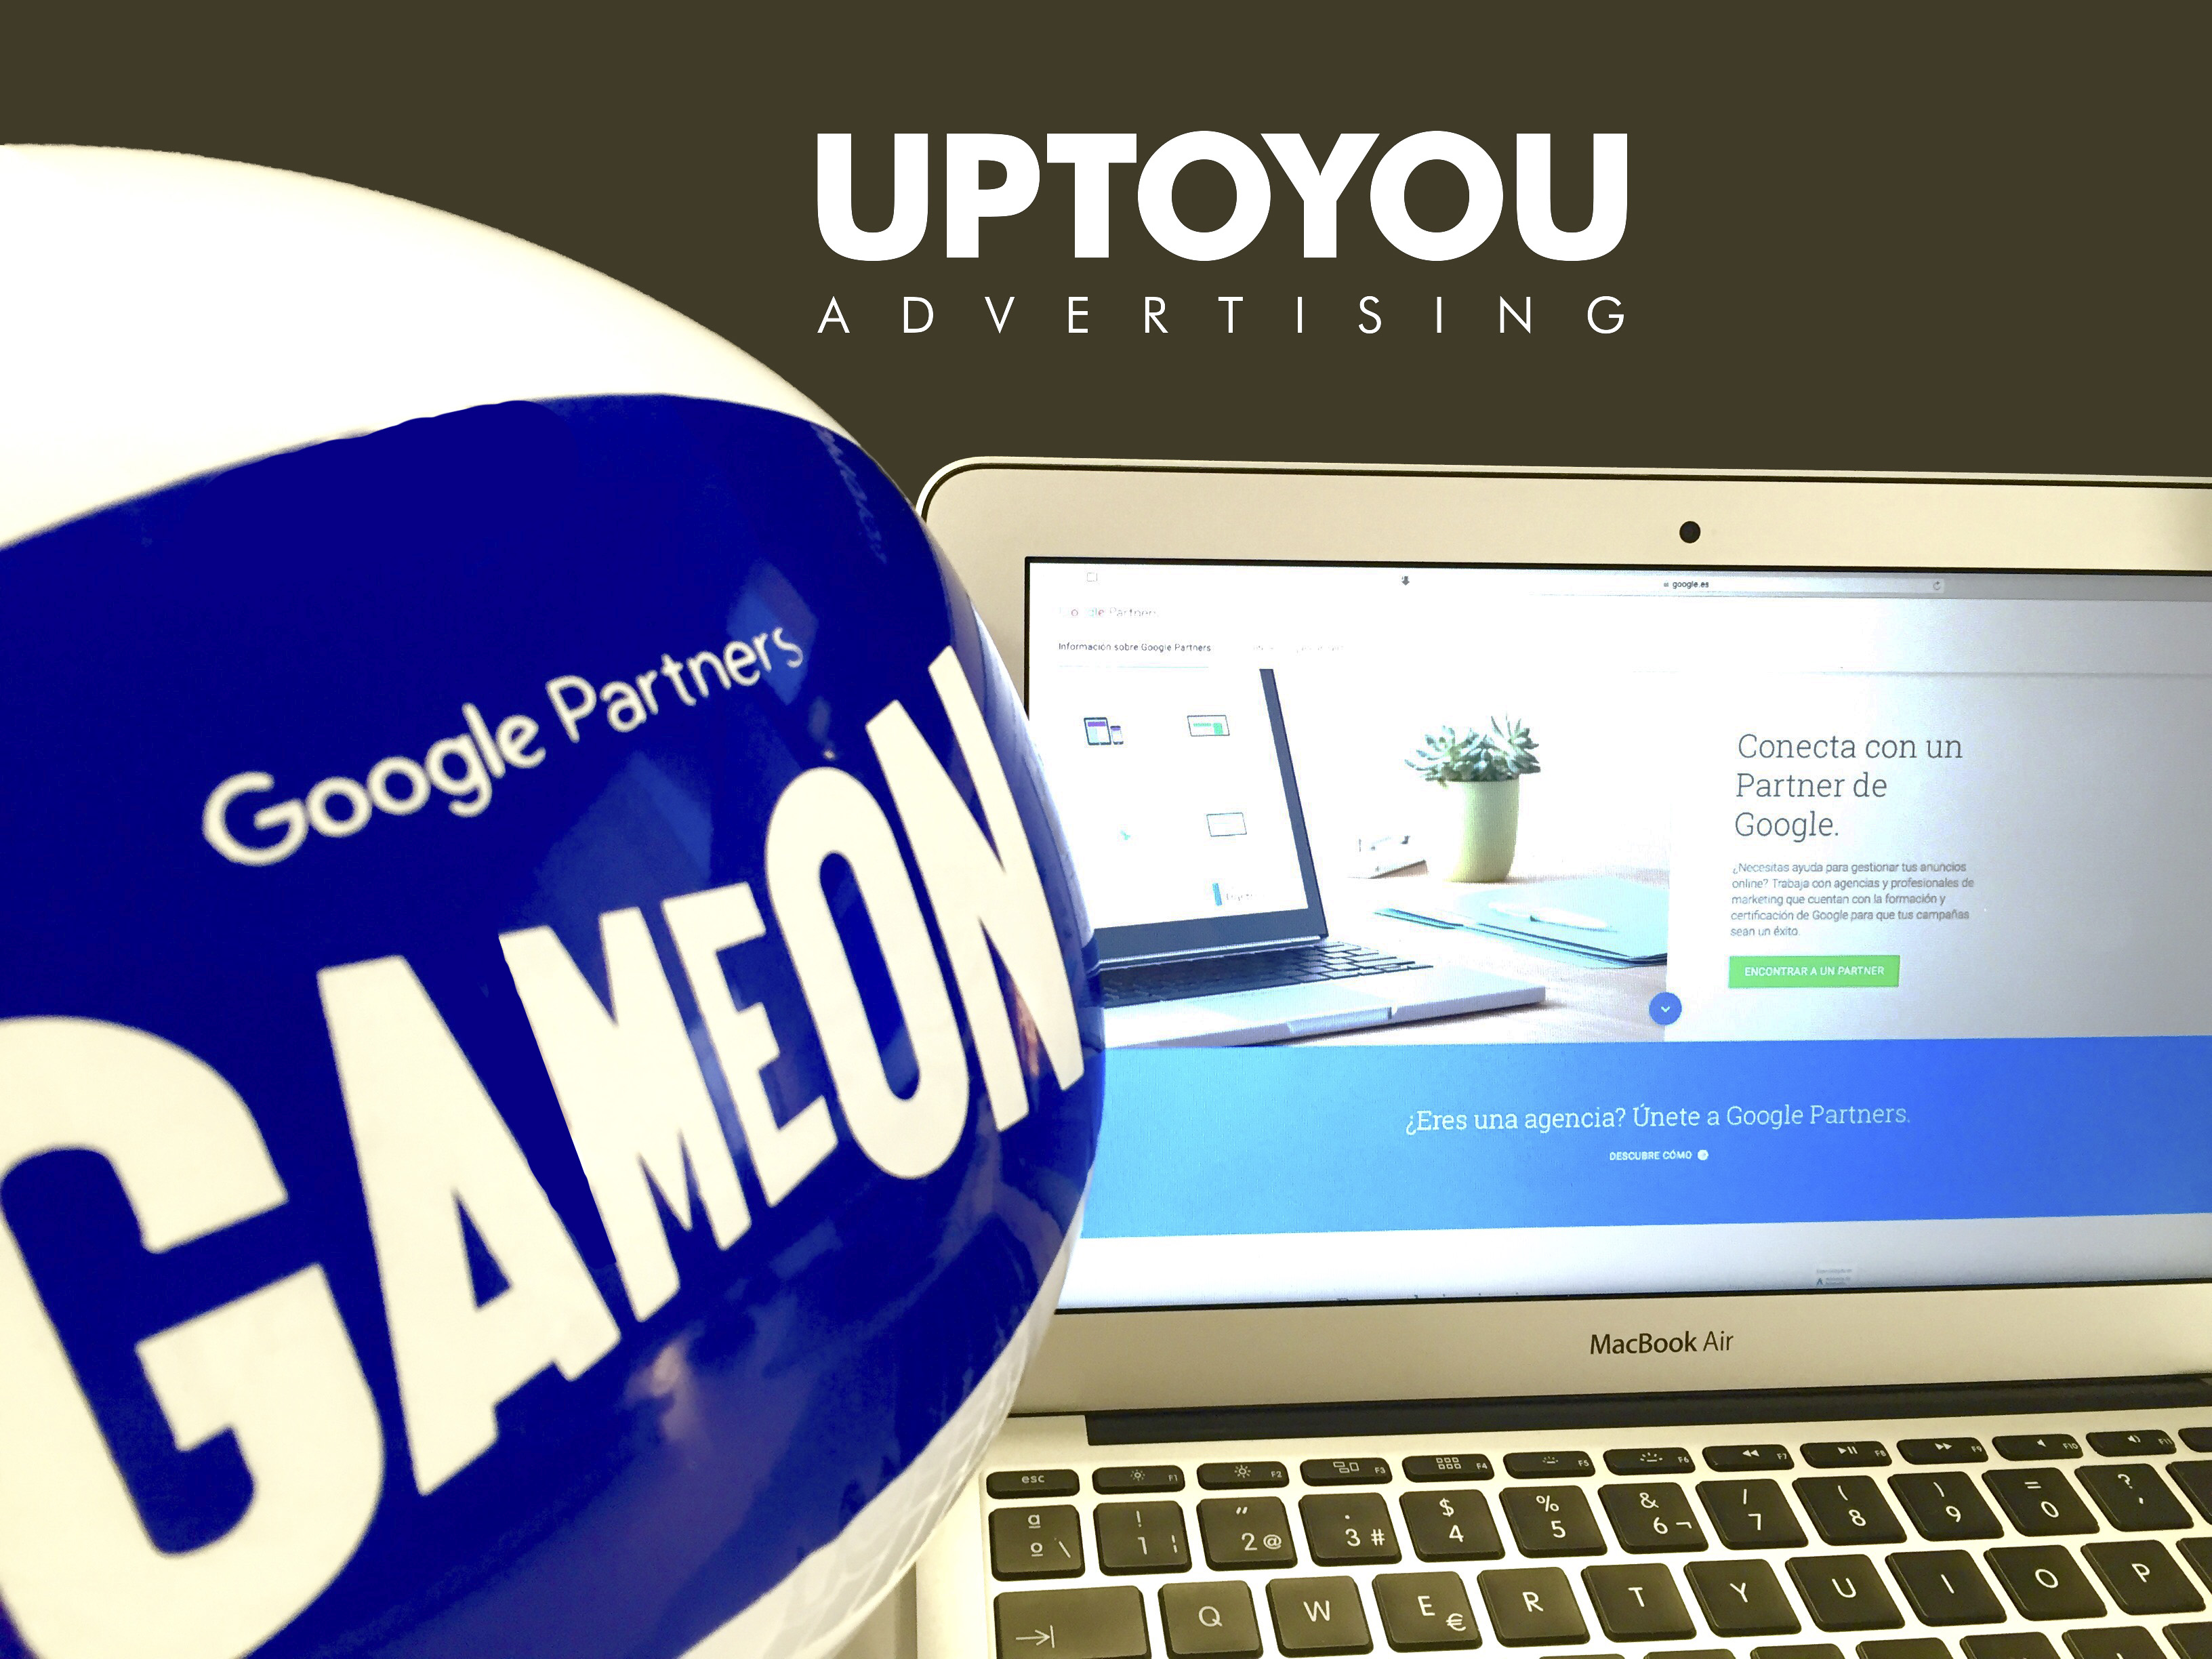 Google Partners & Uptoyou Advertising